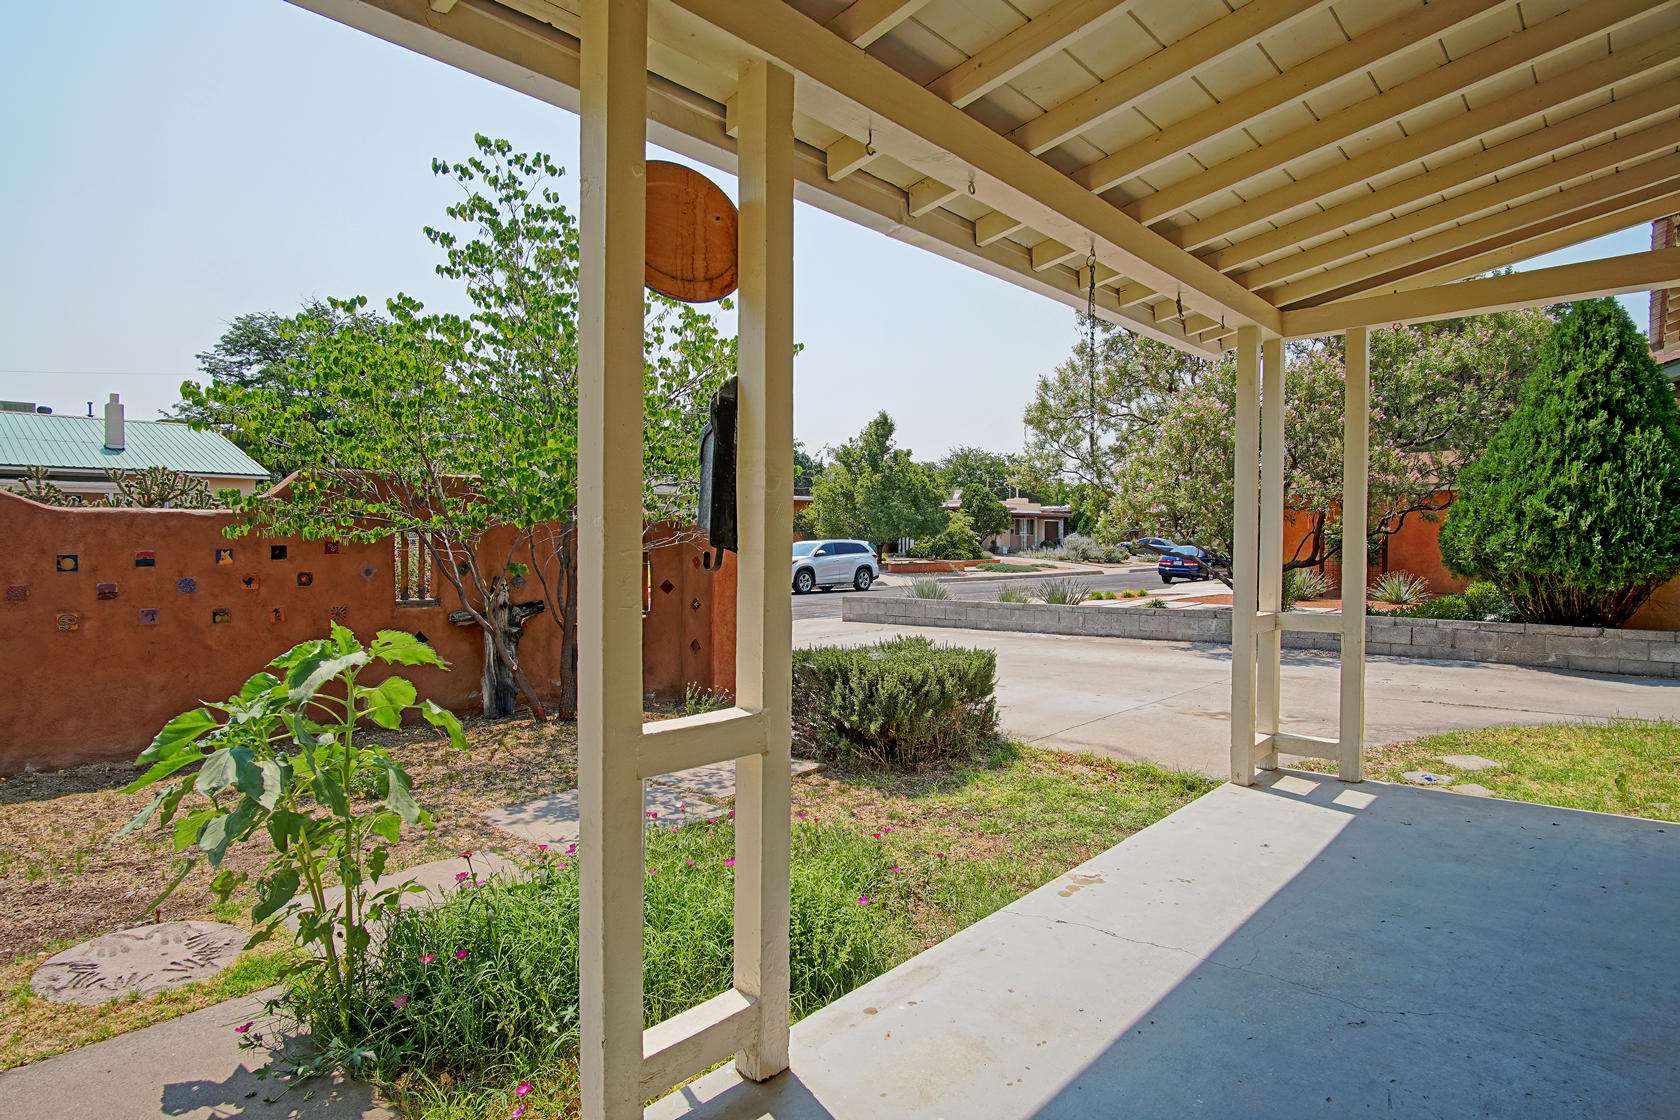 Desirable Home in Altura Park neighborhood.  3 bedroom, 1 bath with a detached CASITA. Main home features wood burning fireplace, refinished original hardwood floors, Newer Metal Roof (2020), updated water heater, heating and cooling units, and freshly painted.